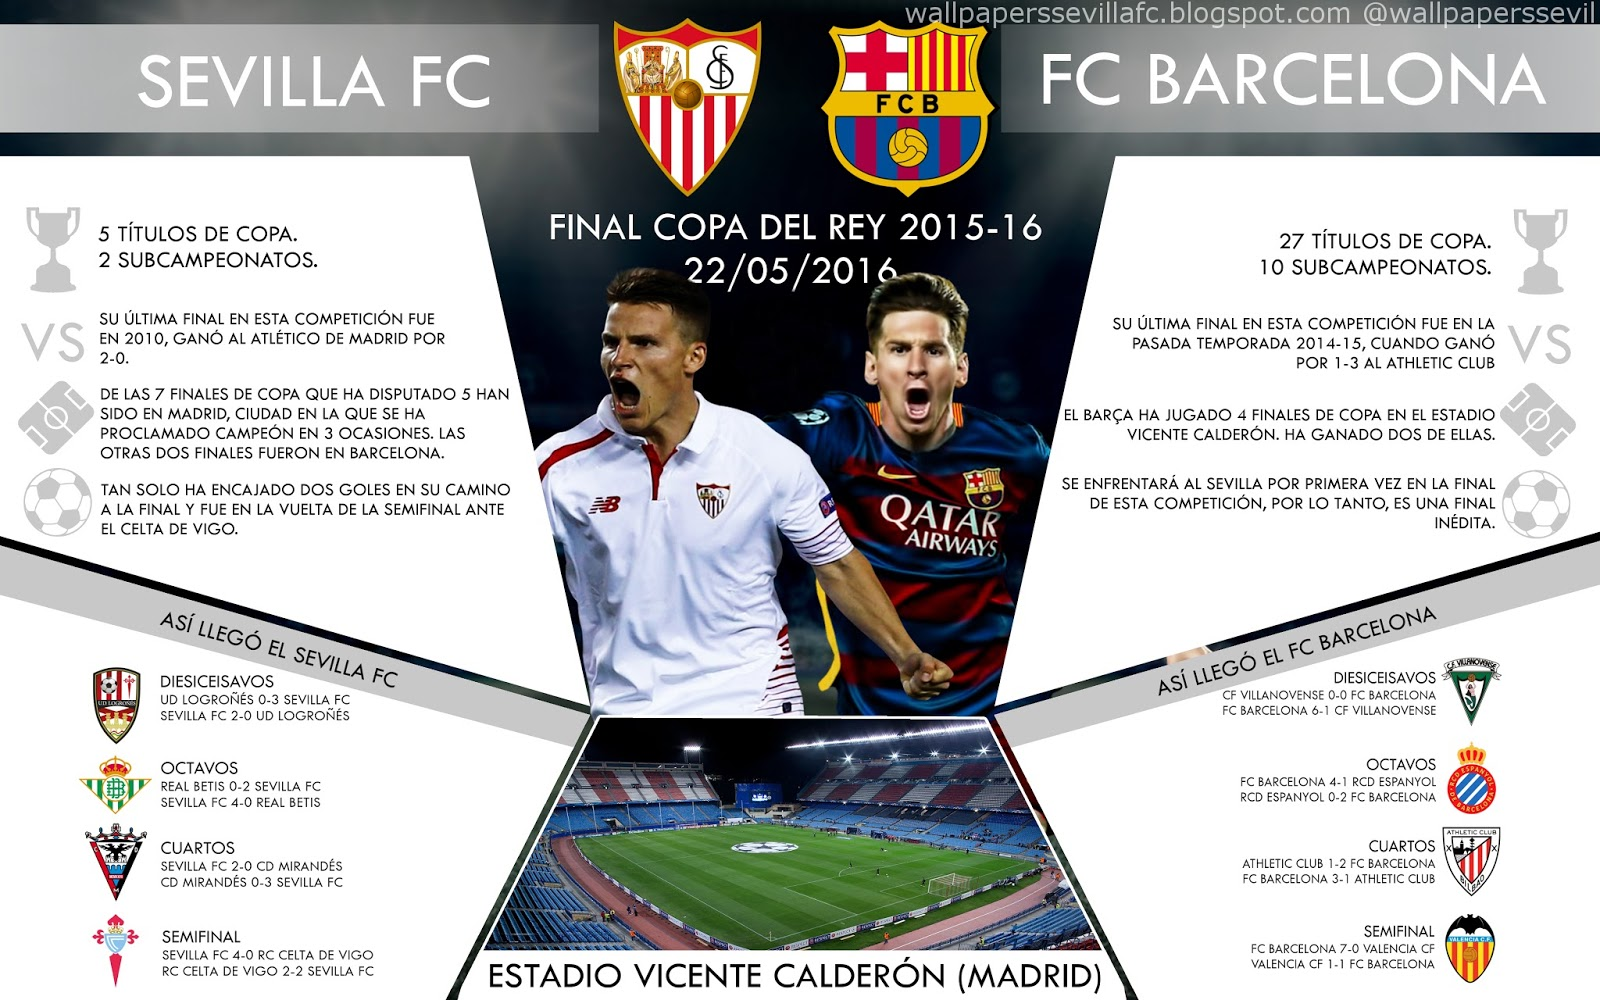 Final de Copa del Rey 2016: Sevilla FC - FC Barcelona | Wallpapers ...